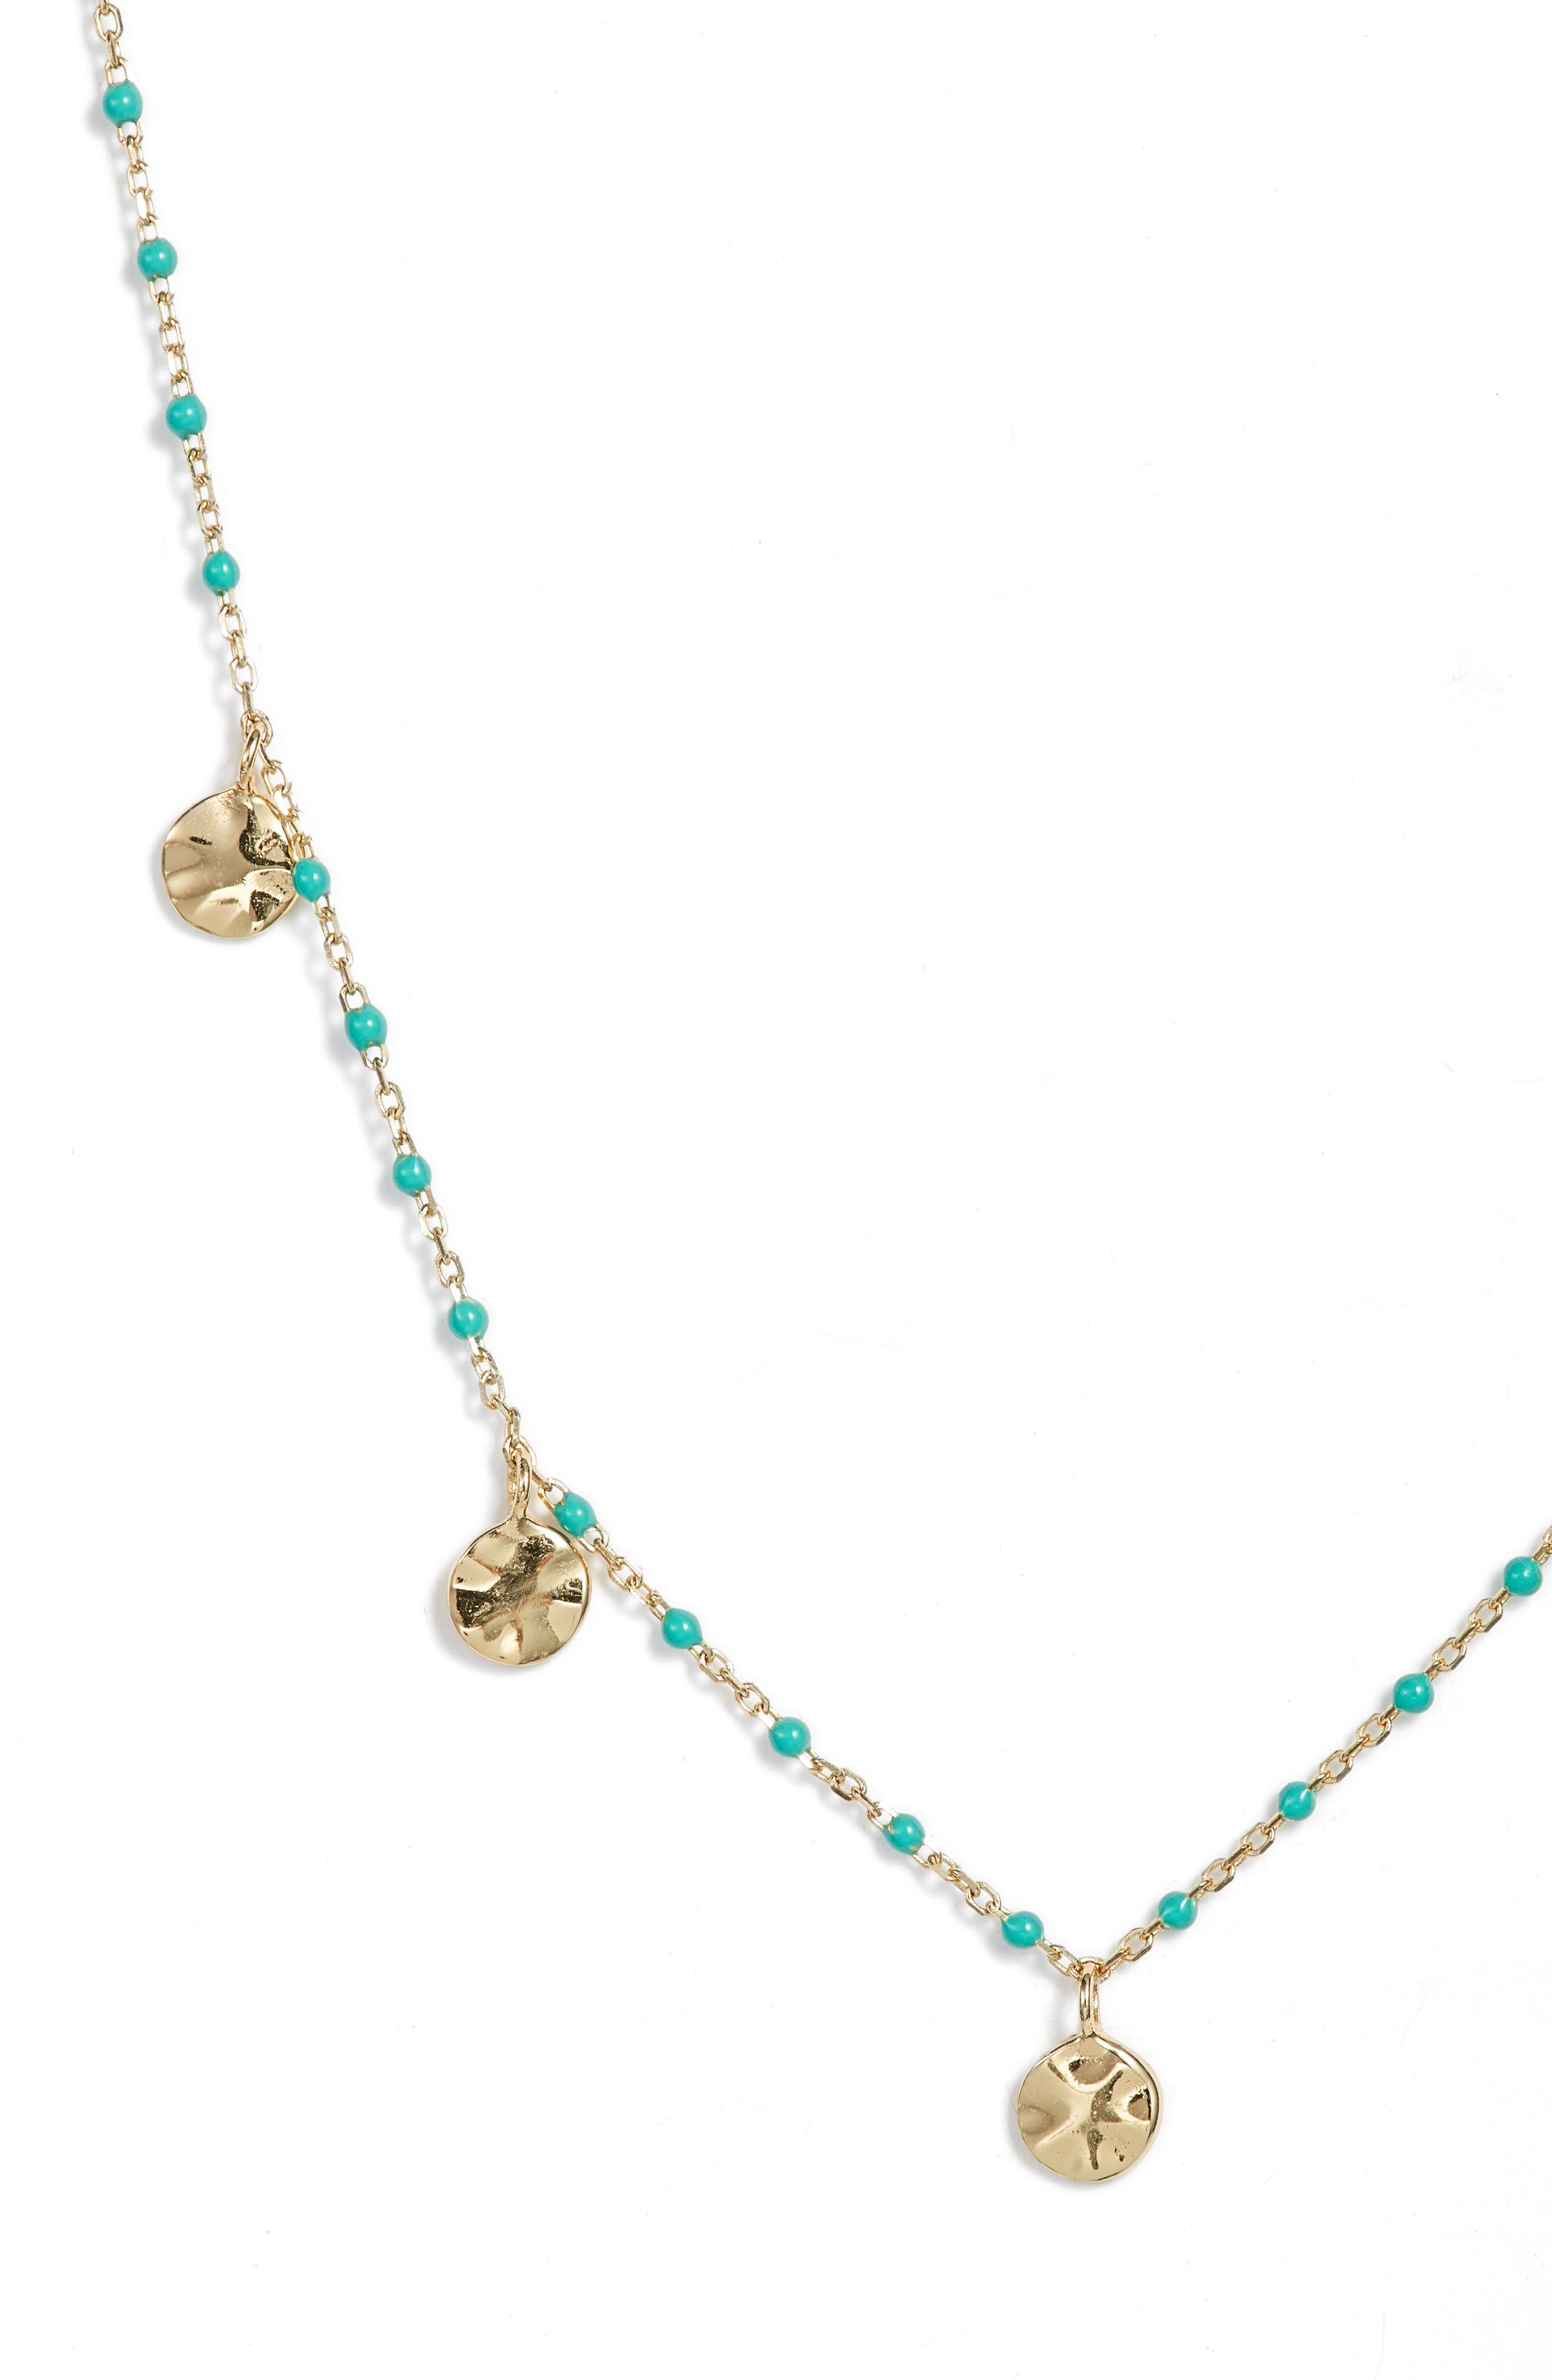 Enamel Bead Mirror Drop Necklace,                             Alternate thumbnail 2, color,                             TURQUOISE/ GOLD